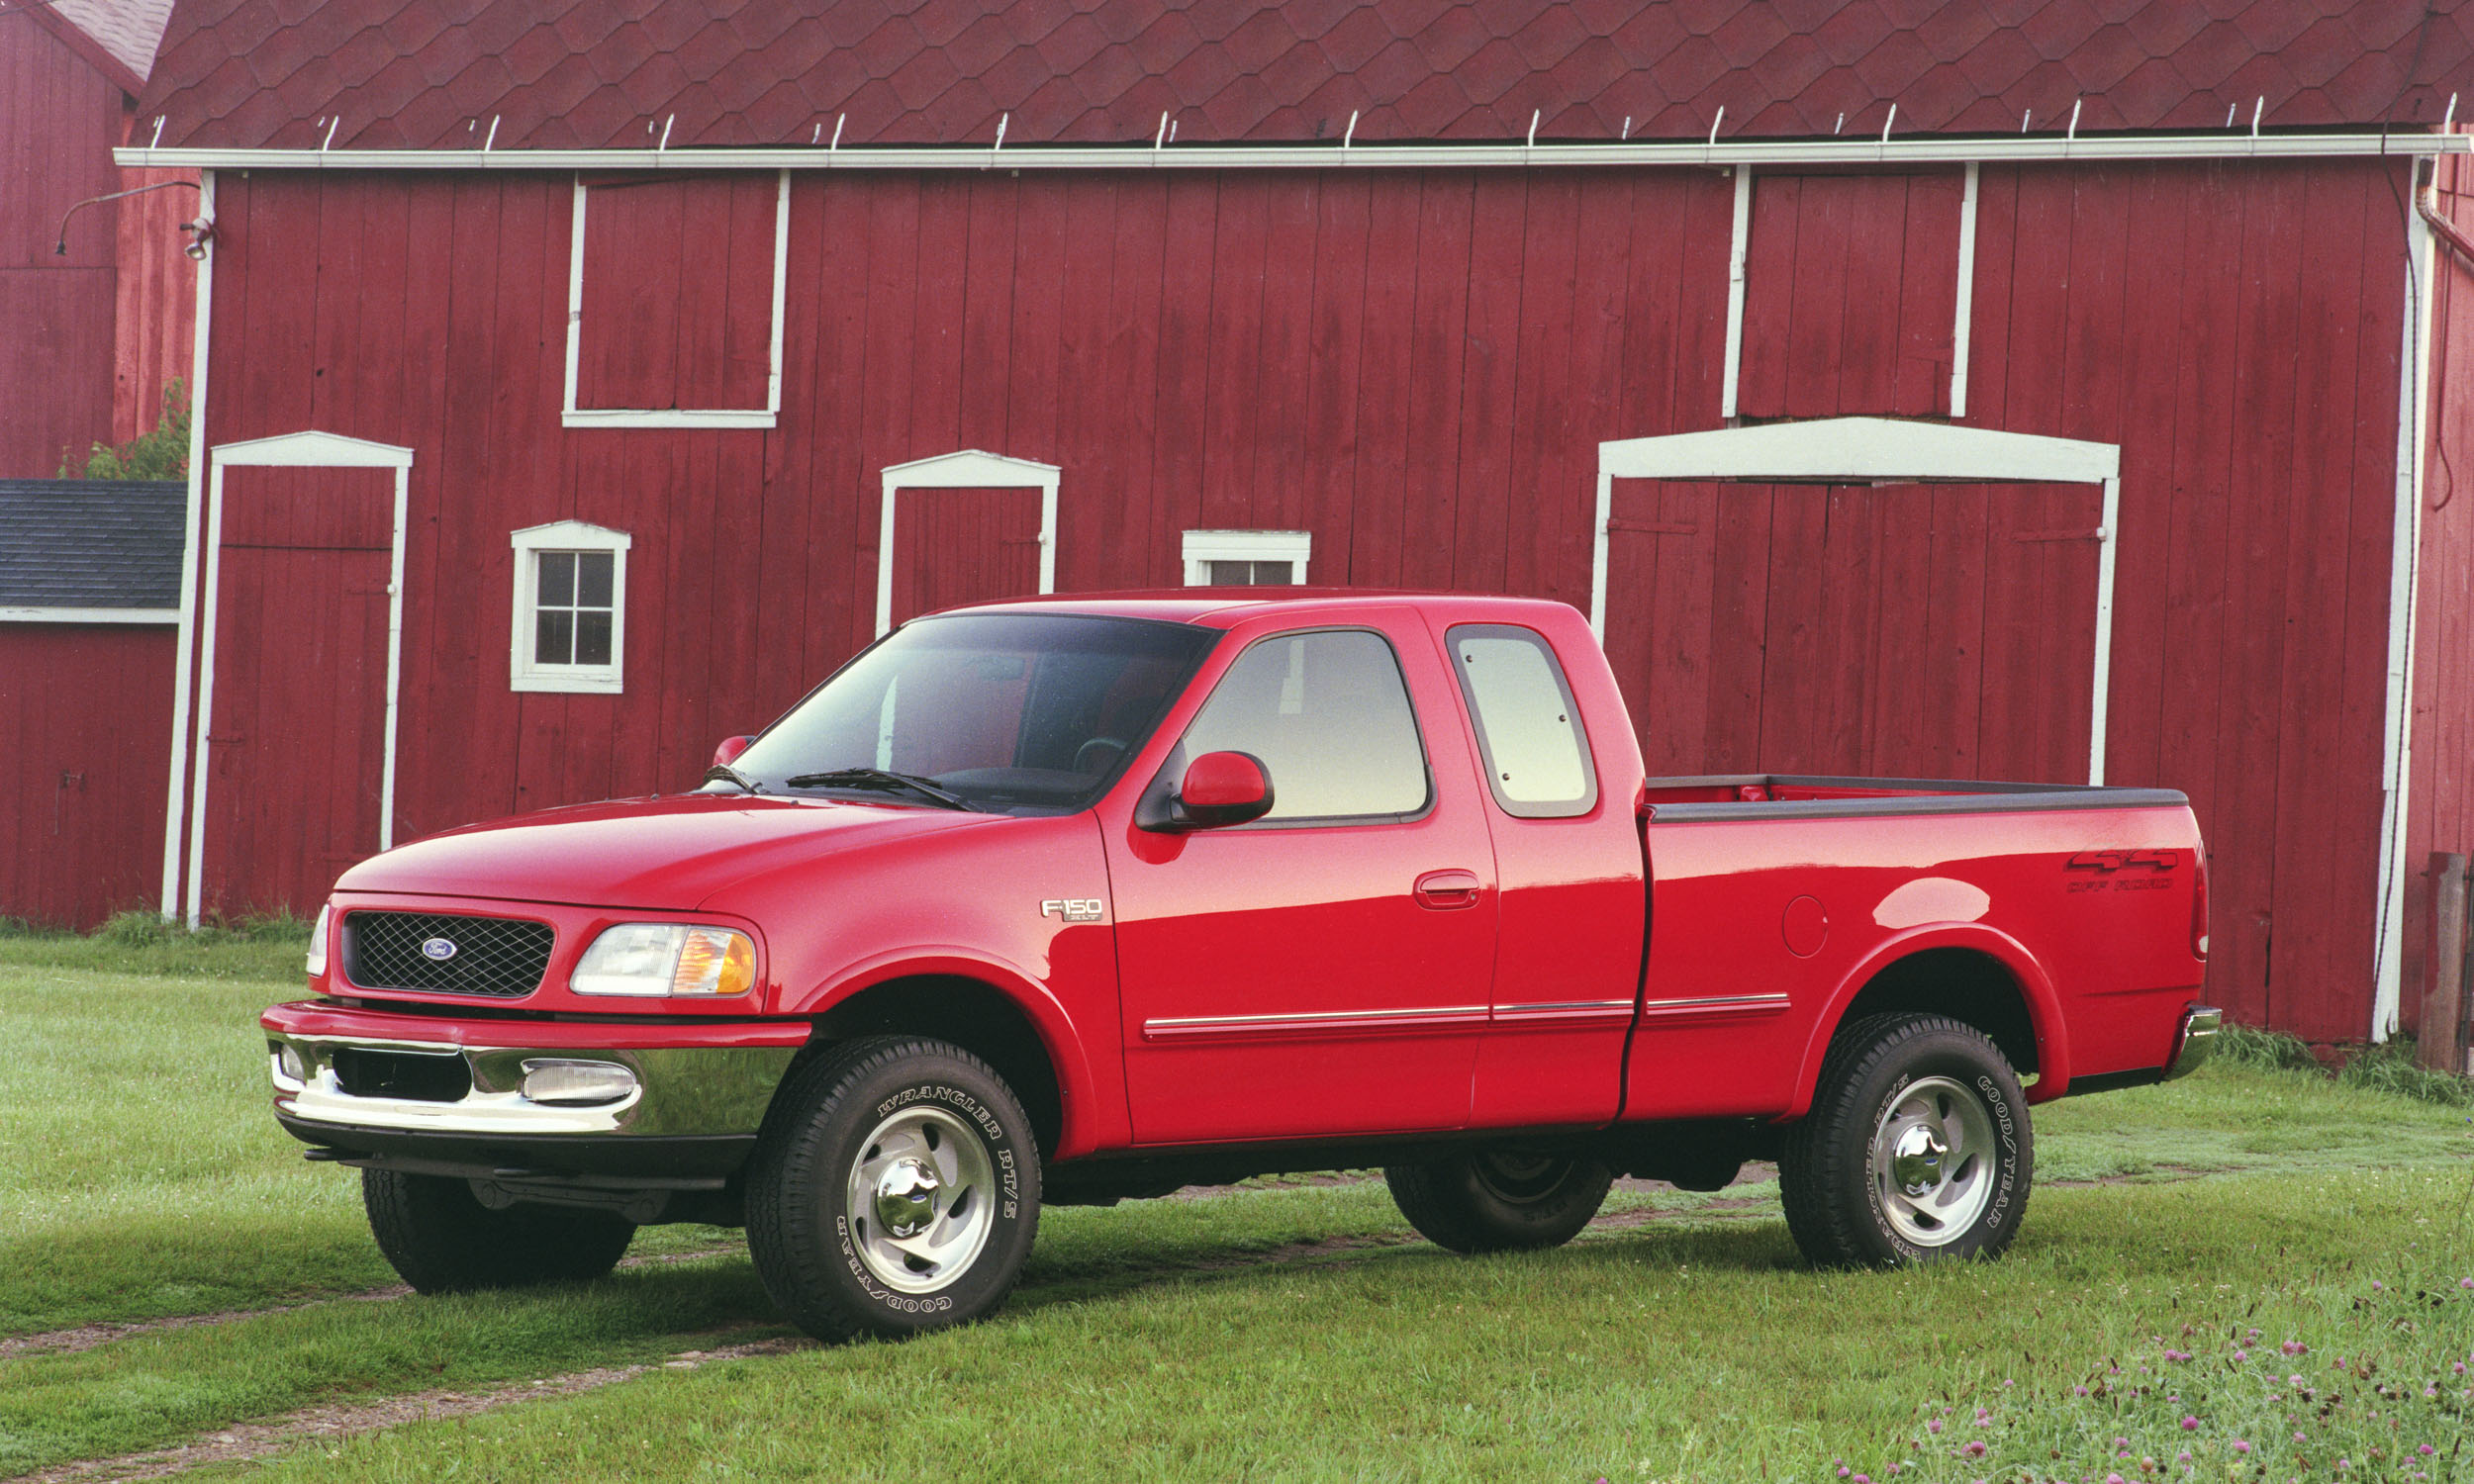 ford f-150 truck history